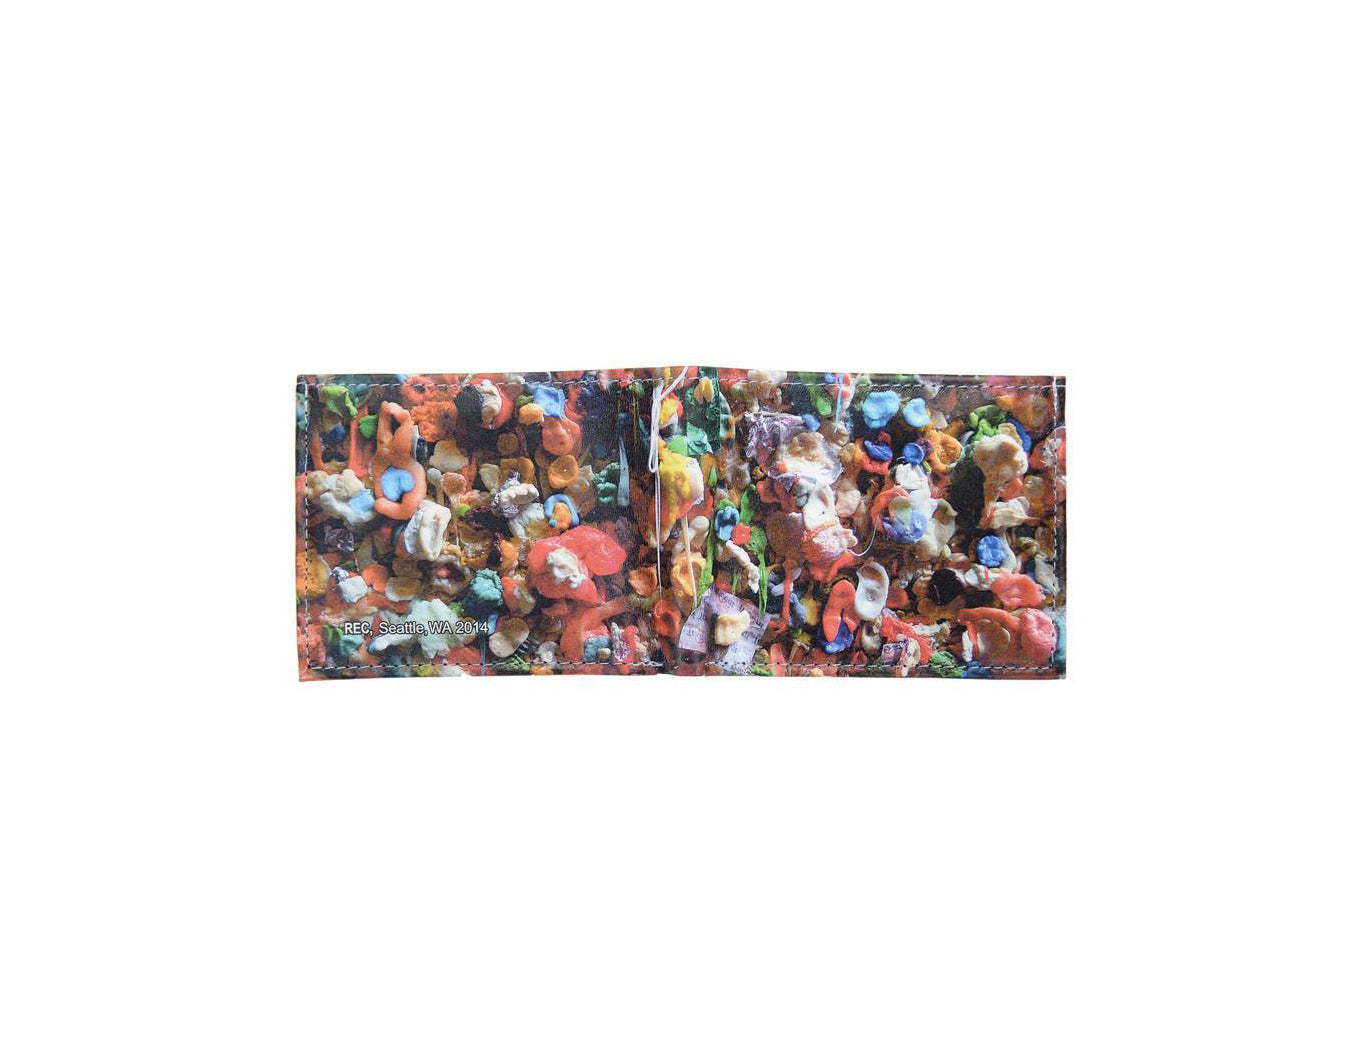 Leather Wallets - Gum Wall - Photography